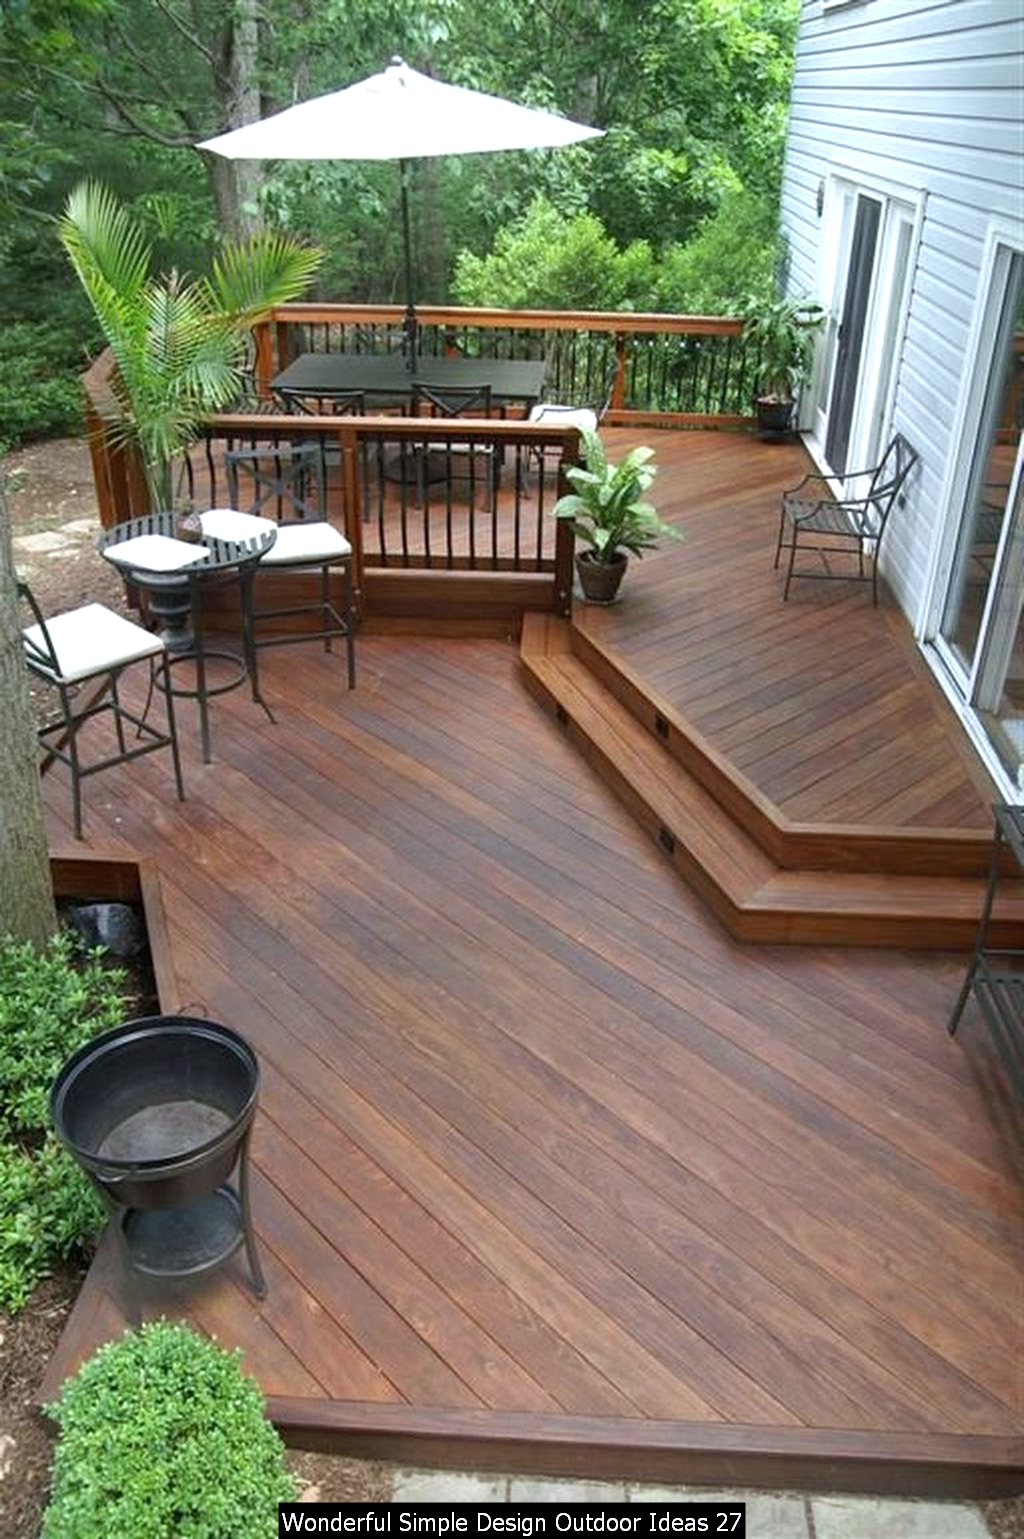 Wonderful Simple Design Outdoor Ideas In 2020 Backyard Patio Patio Design Patio Deck Designs